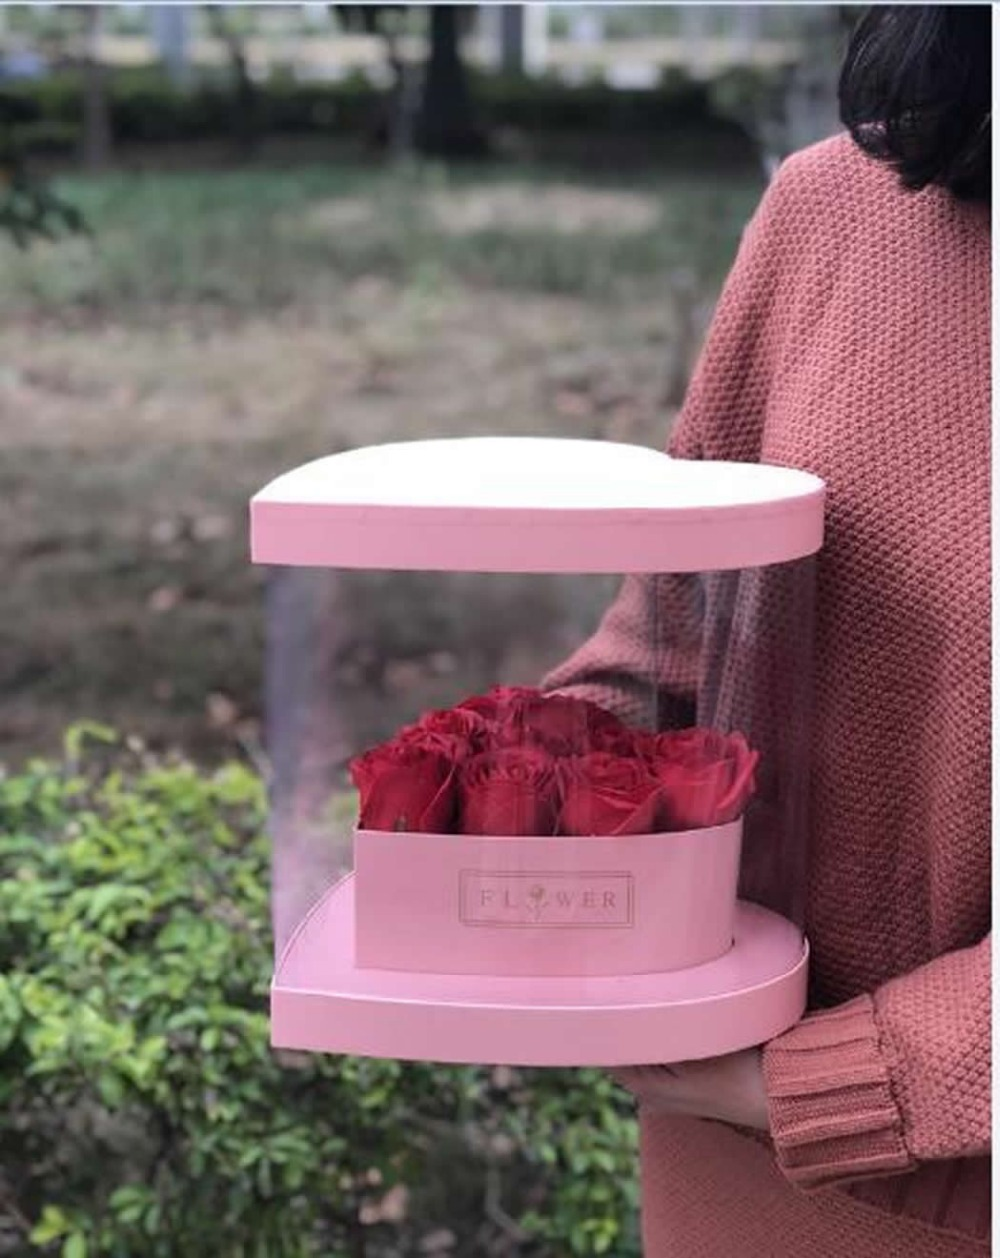 PVC transparent  heart shape florist packing flower gift box wedding party gift box Preserved Fresh Flower box  Buy 2PCS 10% OFFPVC transparent  heart shape florist packing flower gift box wedding party gift box Preserved Fresh Flower box  Buy 2PCS 10% OFF